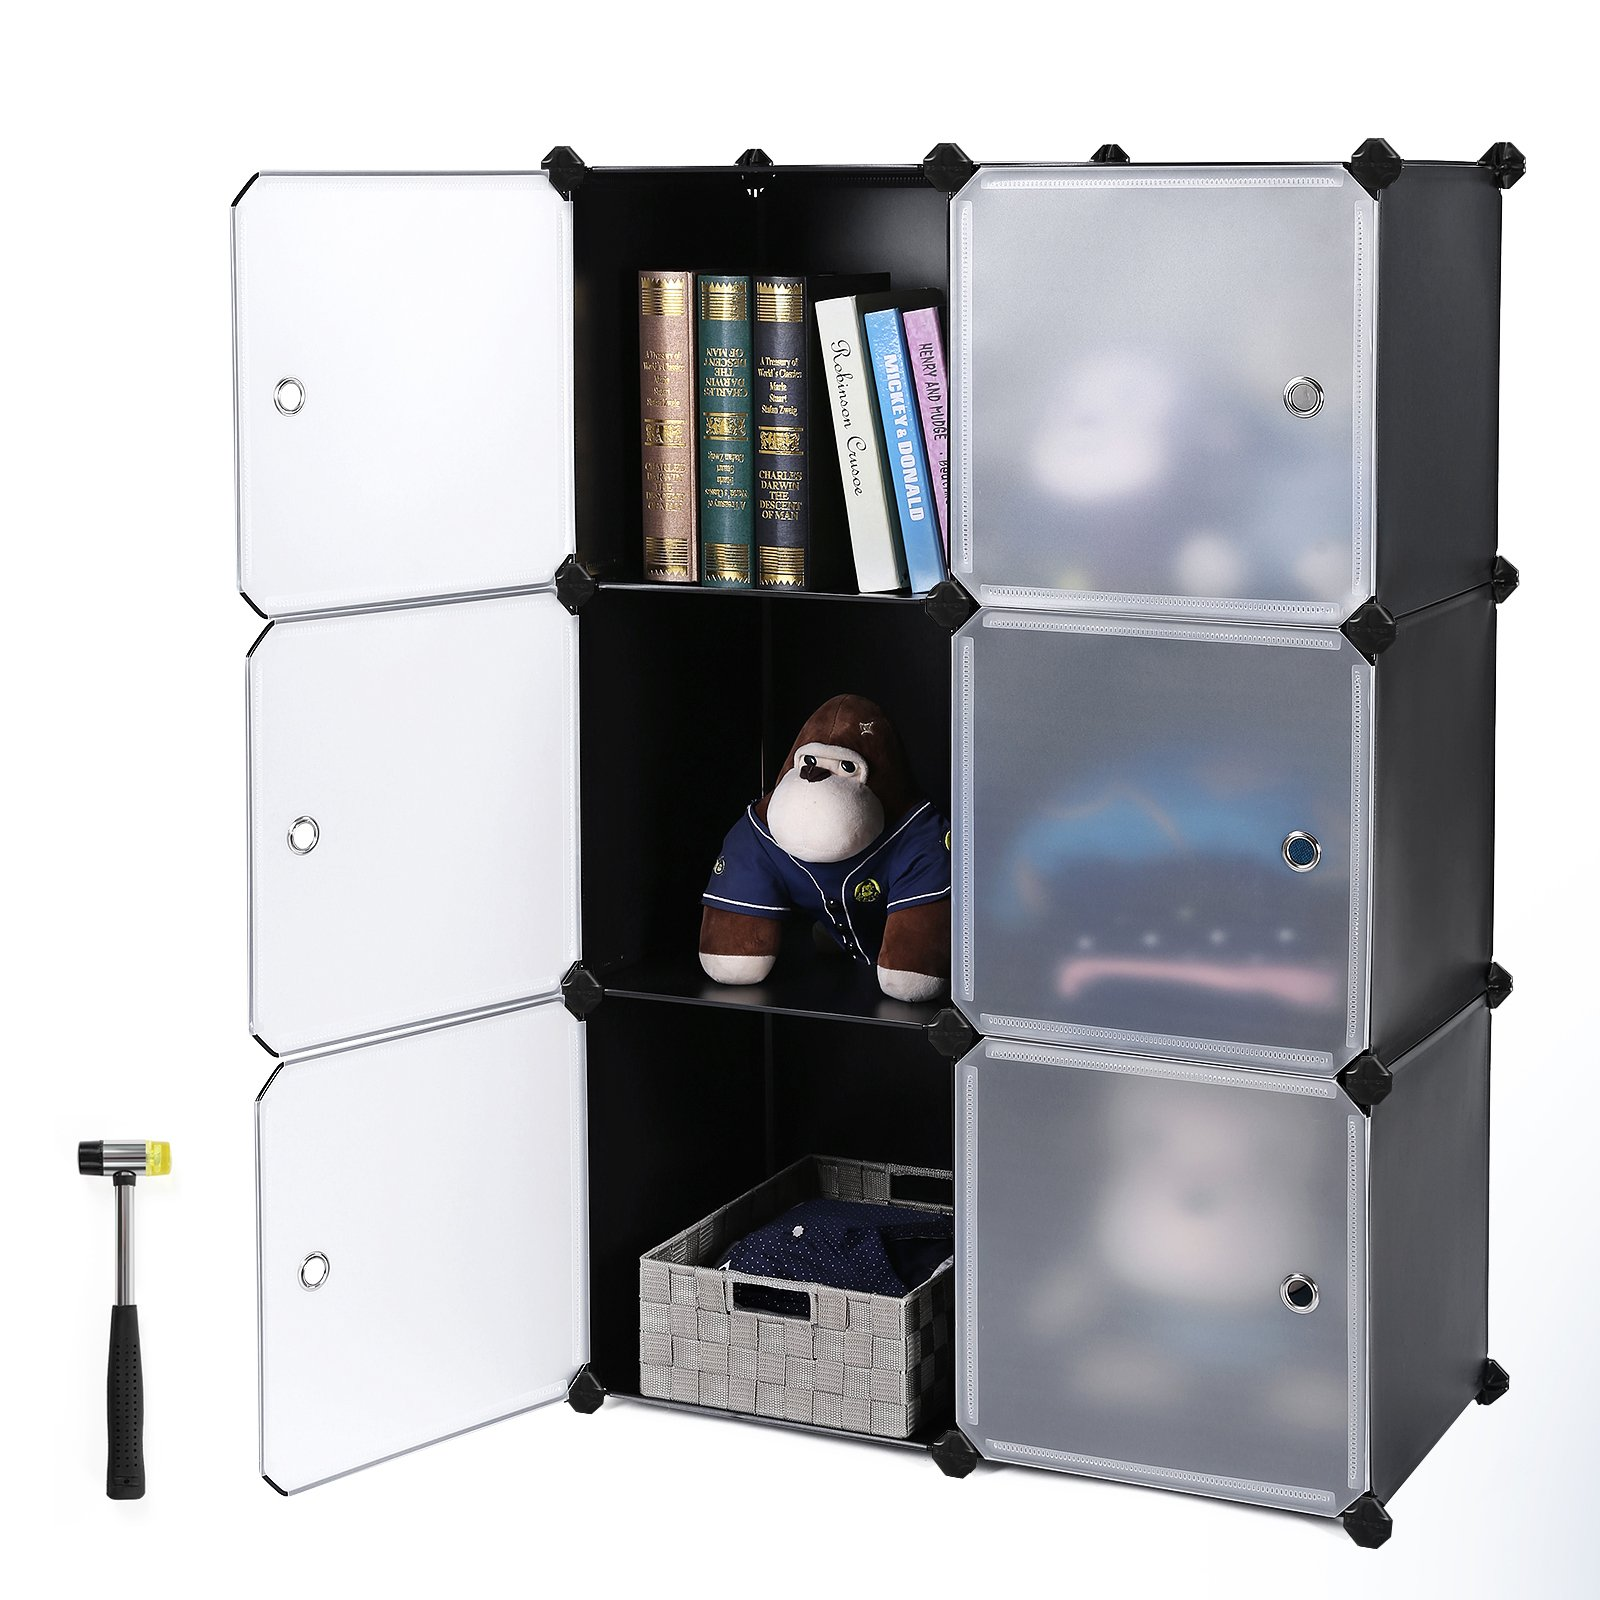 SONGMICS Storage Cube, Plastic Cube Organizer, DIY Modular Closet Cabinet,Bookcase with Doors for Bedroom, Living room, Office, Includes Rubber Mallet and anti-tipping device ULPC23H